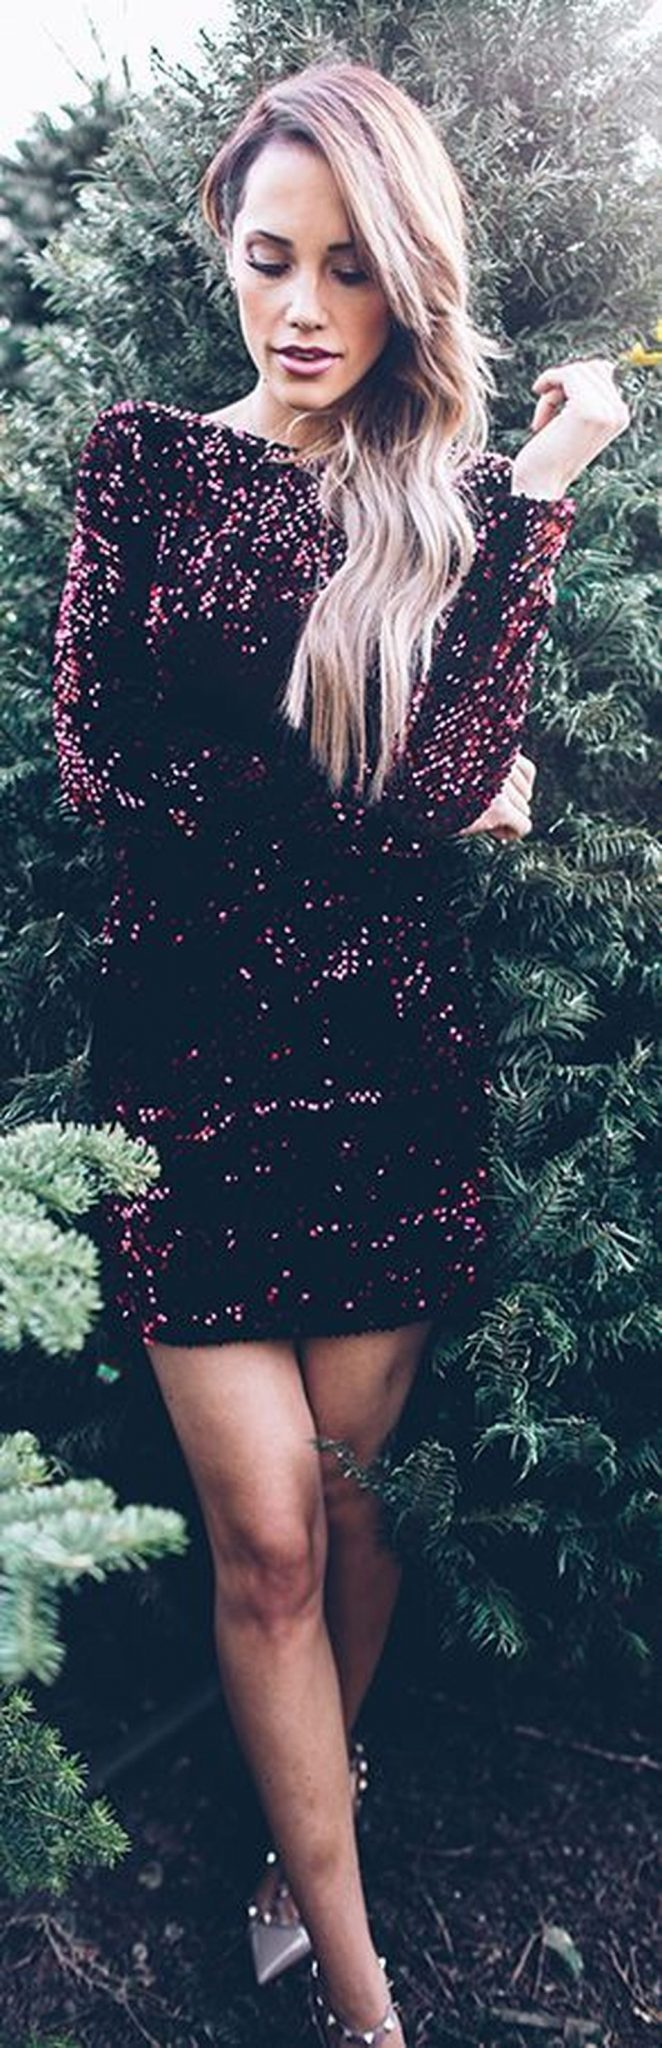 Sequin dress for new year eve party and night out 7